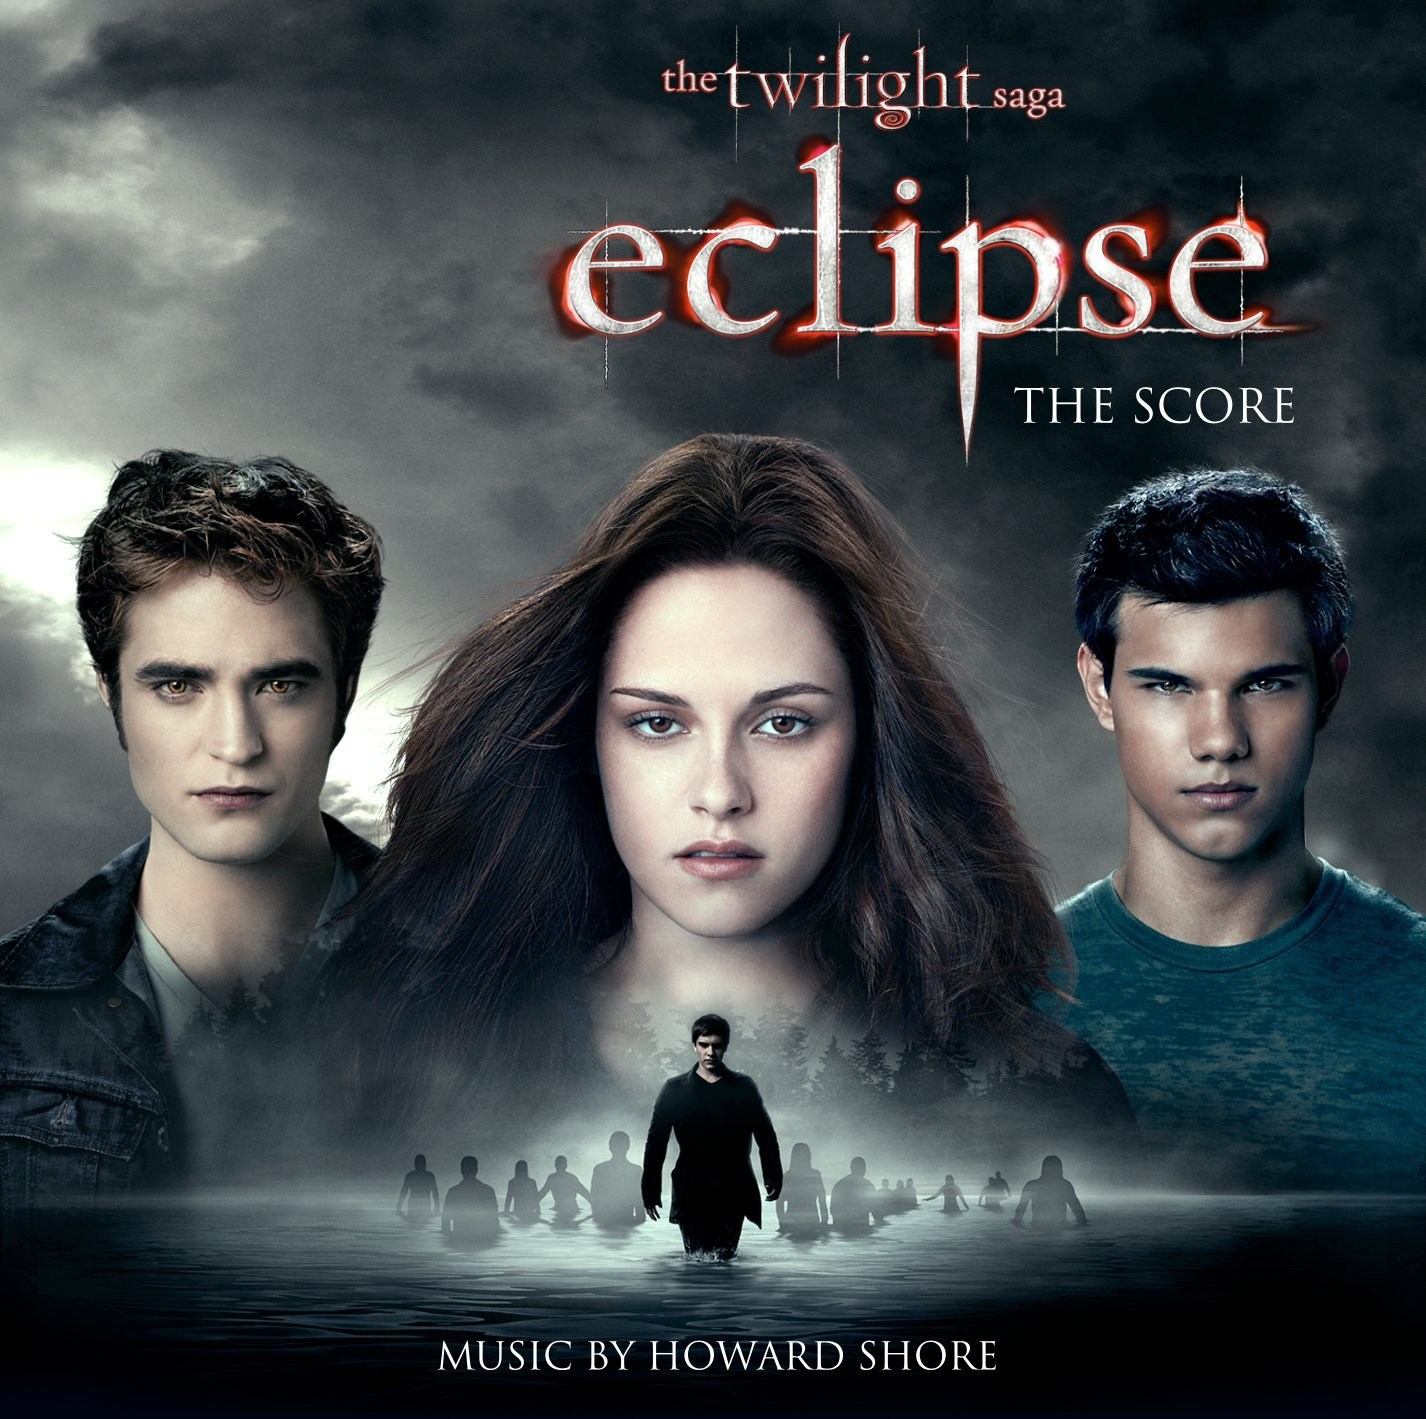 http://2.bp.blogspot.com/_bI5-8YnkkFA/TCwWassxuoI/AAAAAAAAEG8/XVYydnoewF0/s1600/00-howard_shore-the_twilight_saga_eclipse_(the_score)-ost-2010-front.jpg